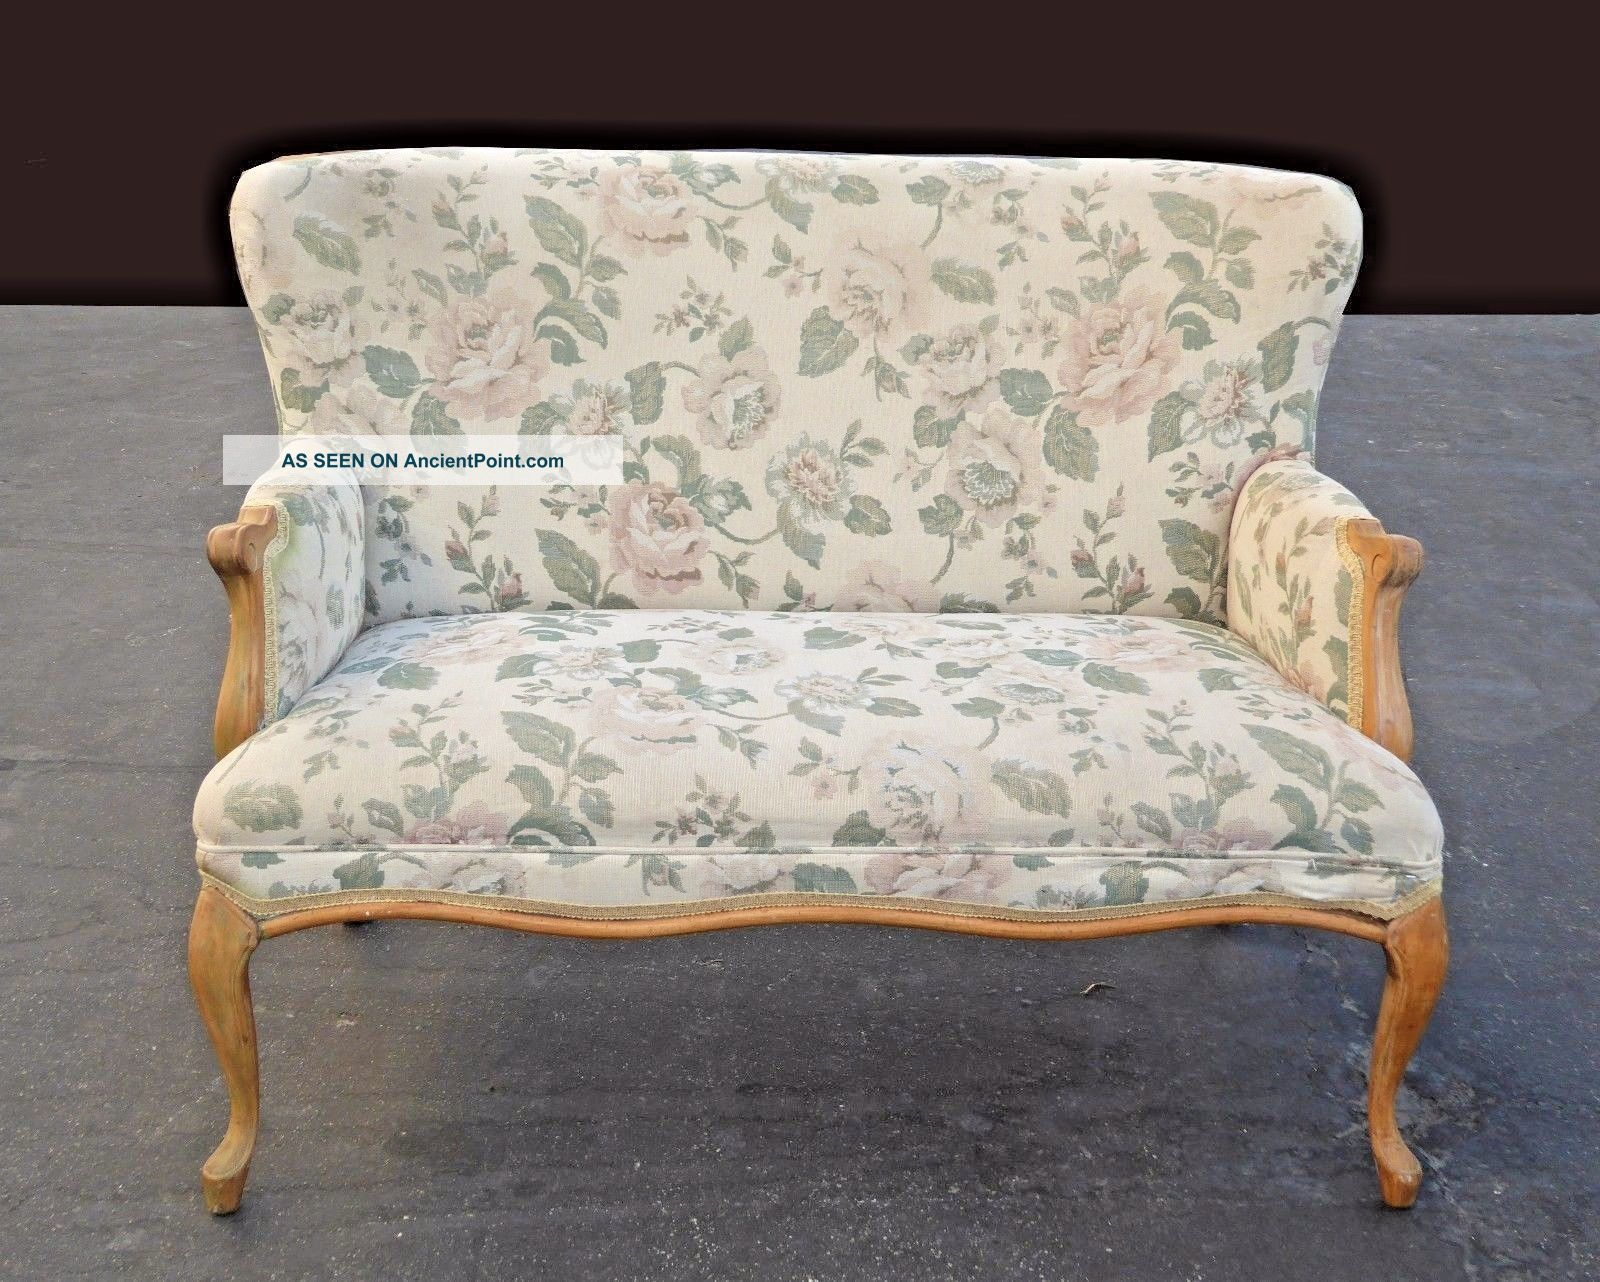 Vintage French Country Cottage Settee Loveseat Floral Print Post-1950 photo